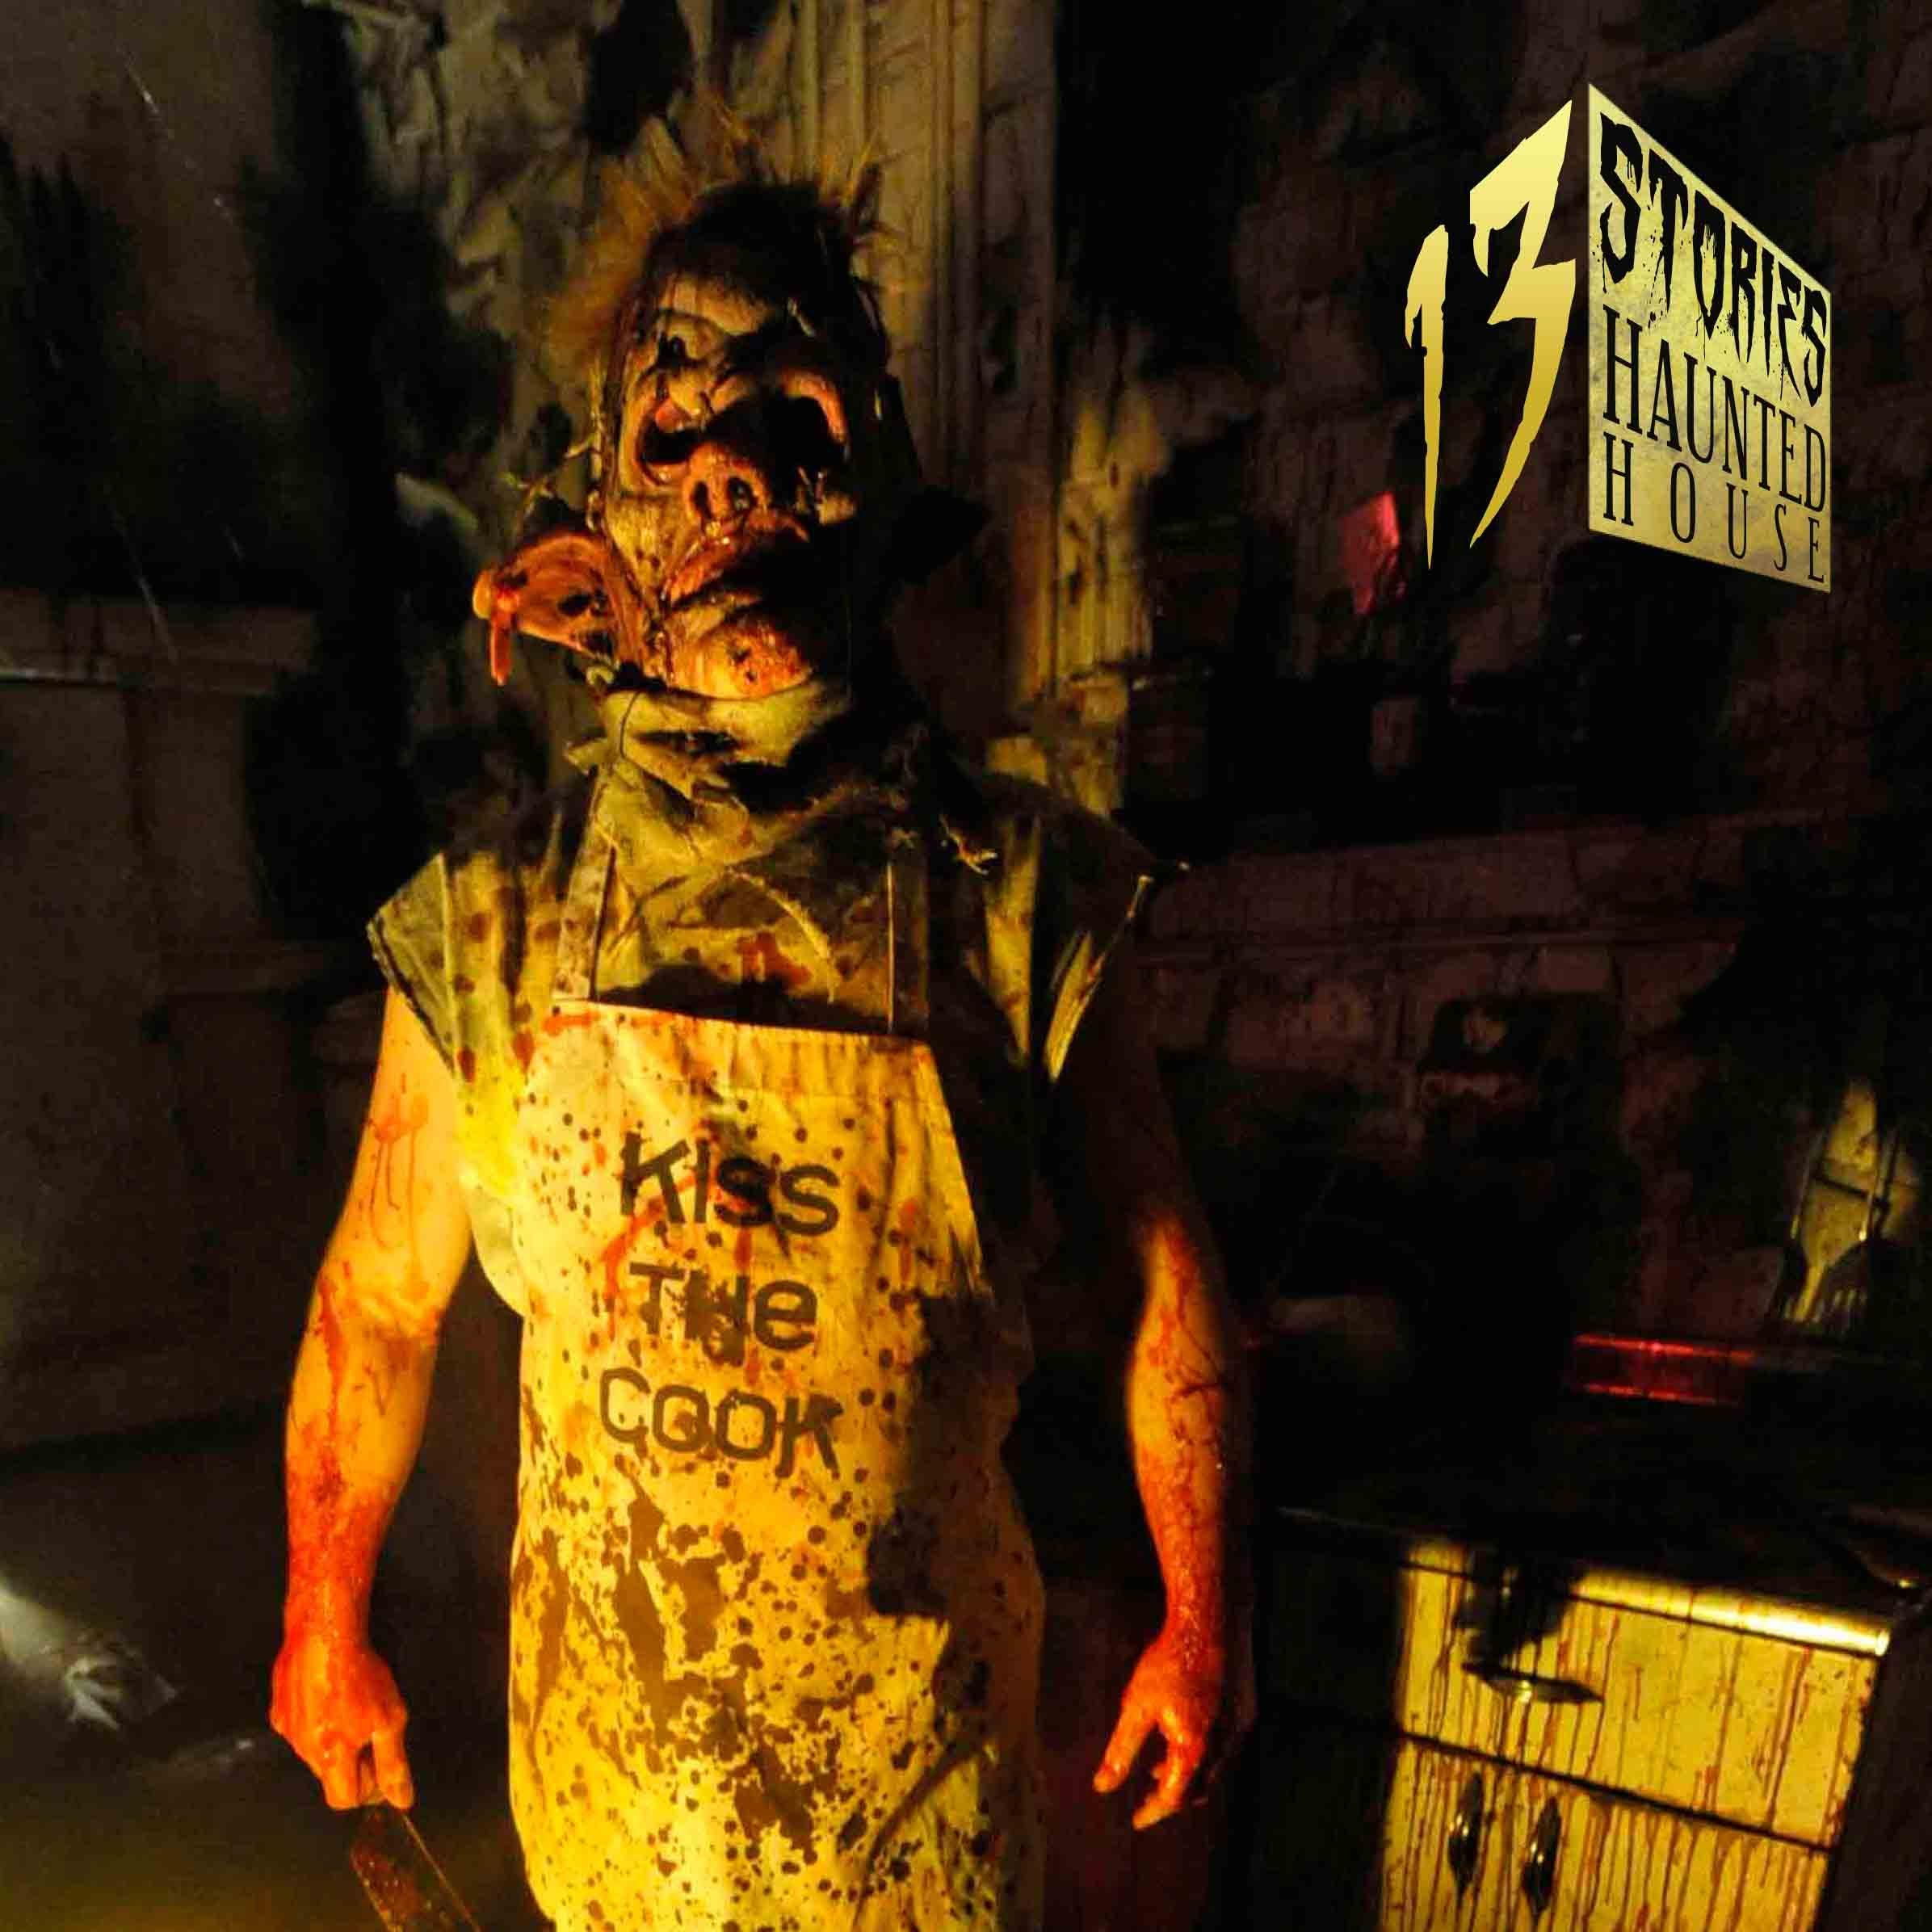 Top 5 haunted houses to visit near atlanta gafollowers for 13 door haunted house